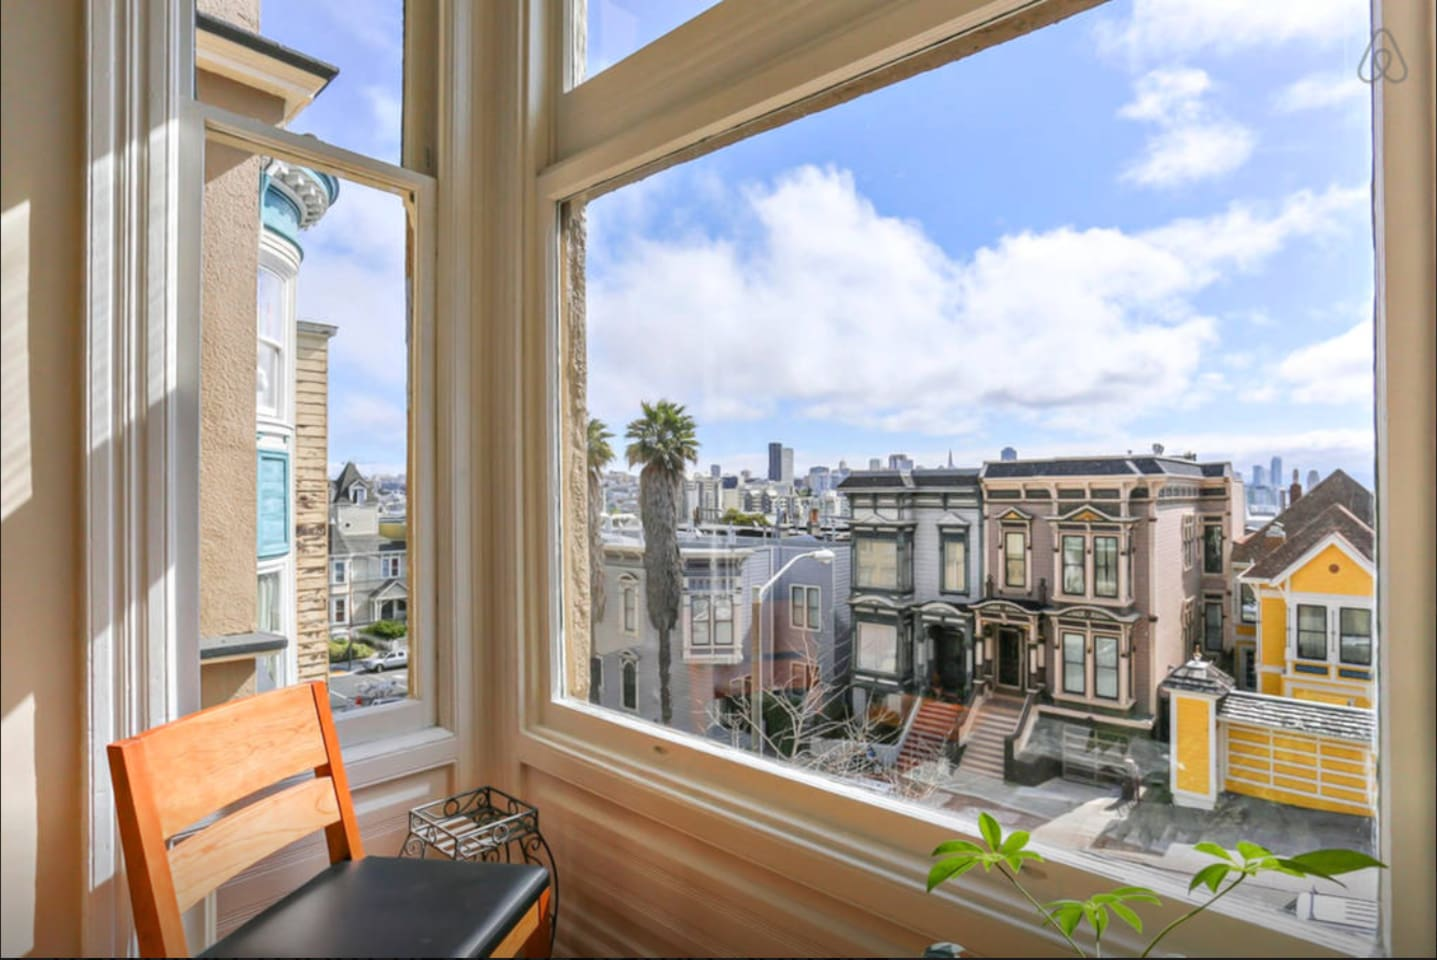 Amazing view from the living room window. Watch sunsets. Enjoy looking at San Francisco's architecture and the downtown behind.